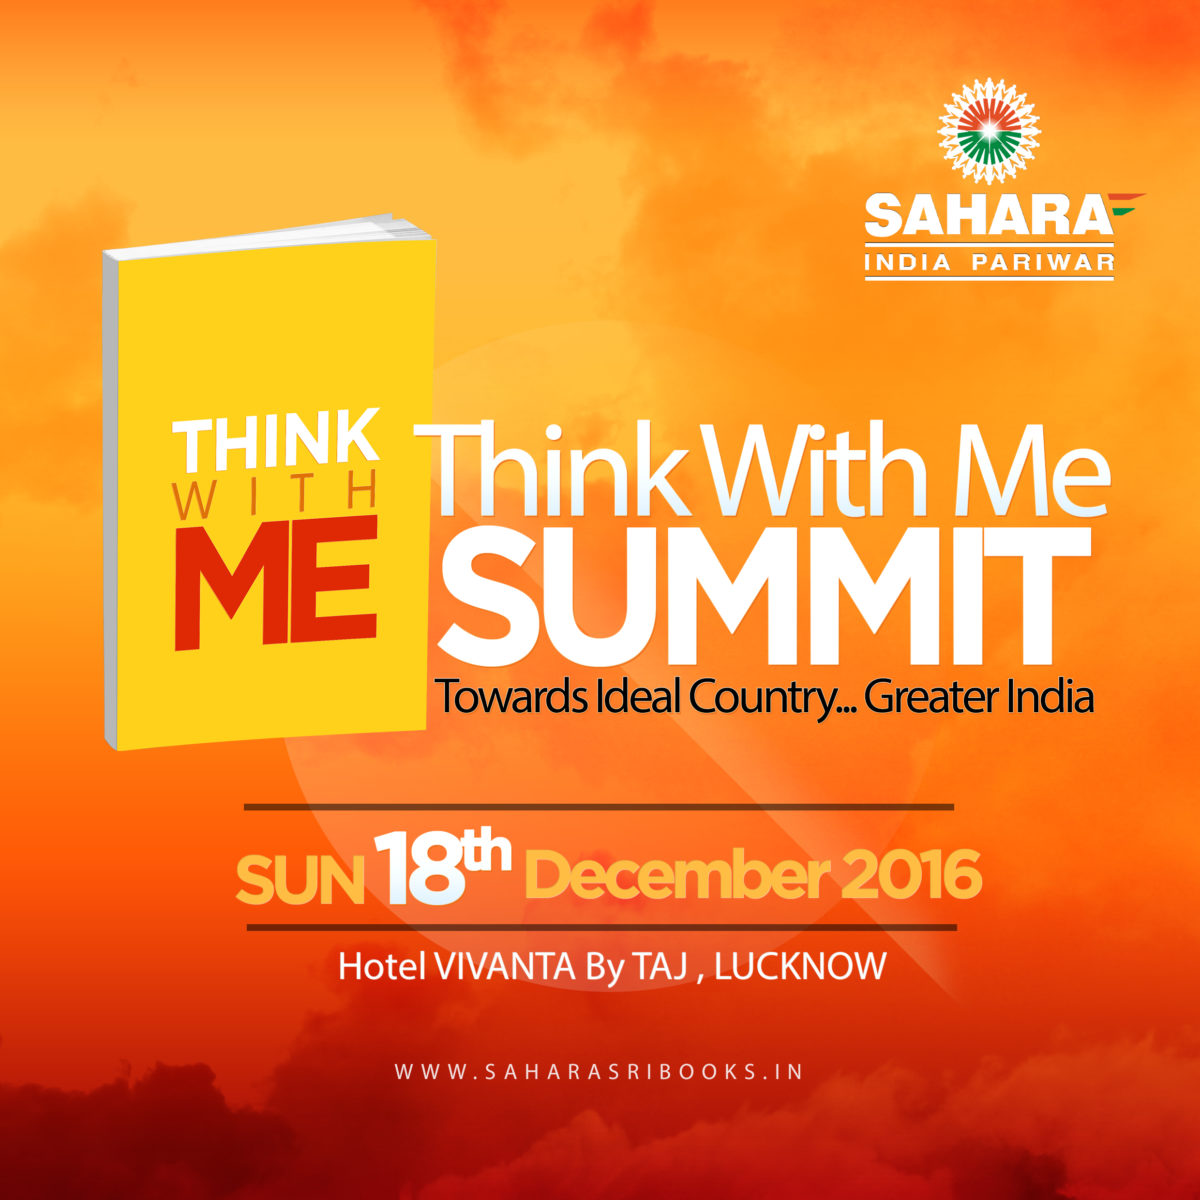 sahara summit 2016 think with me